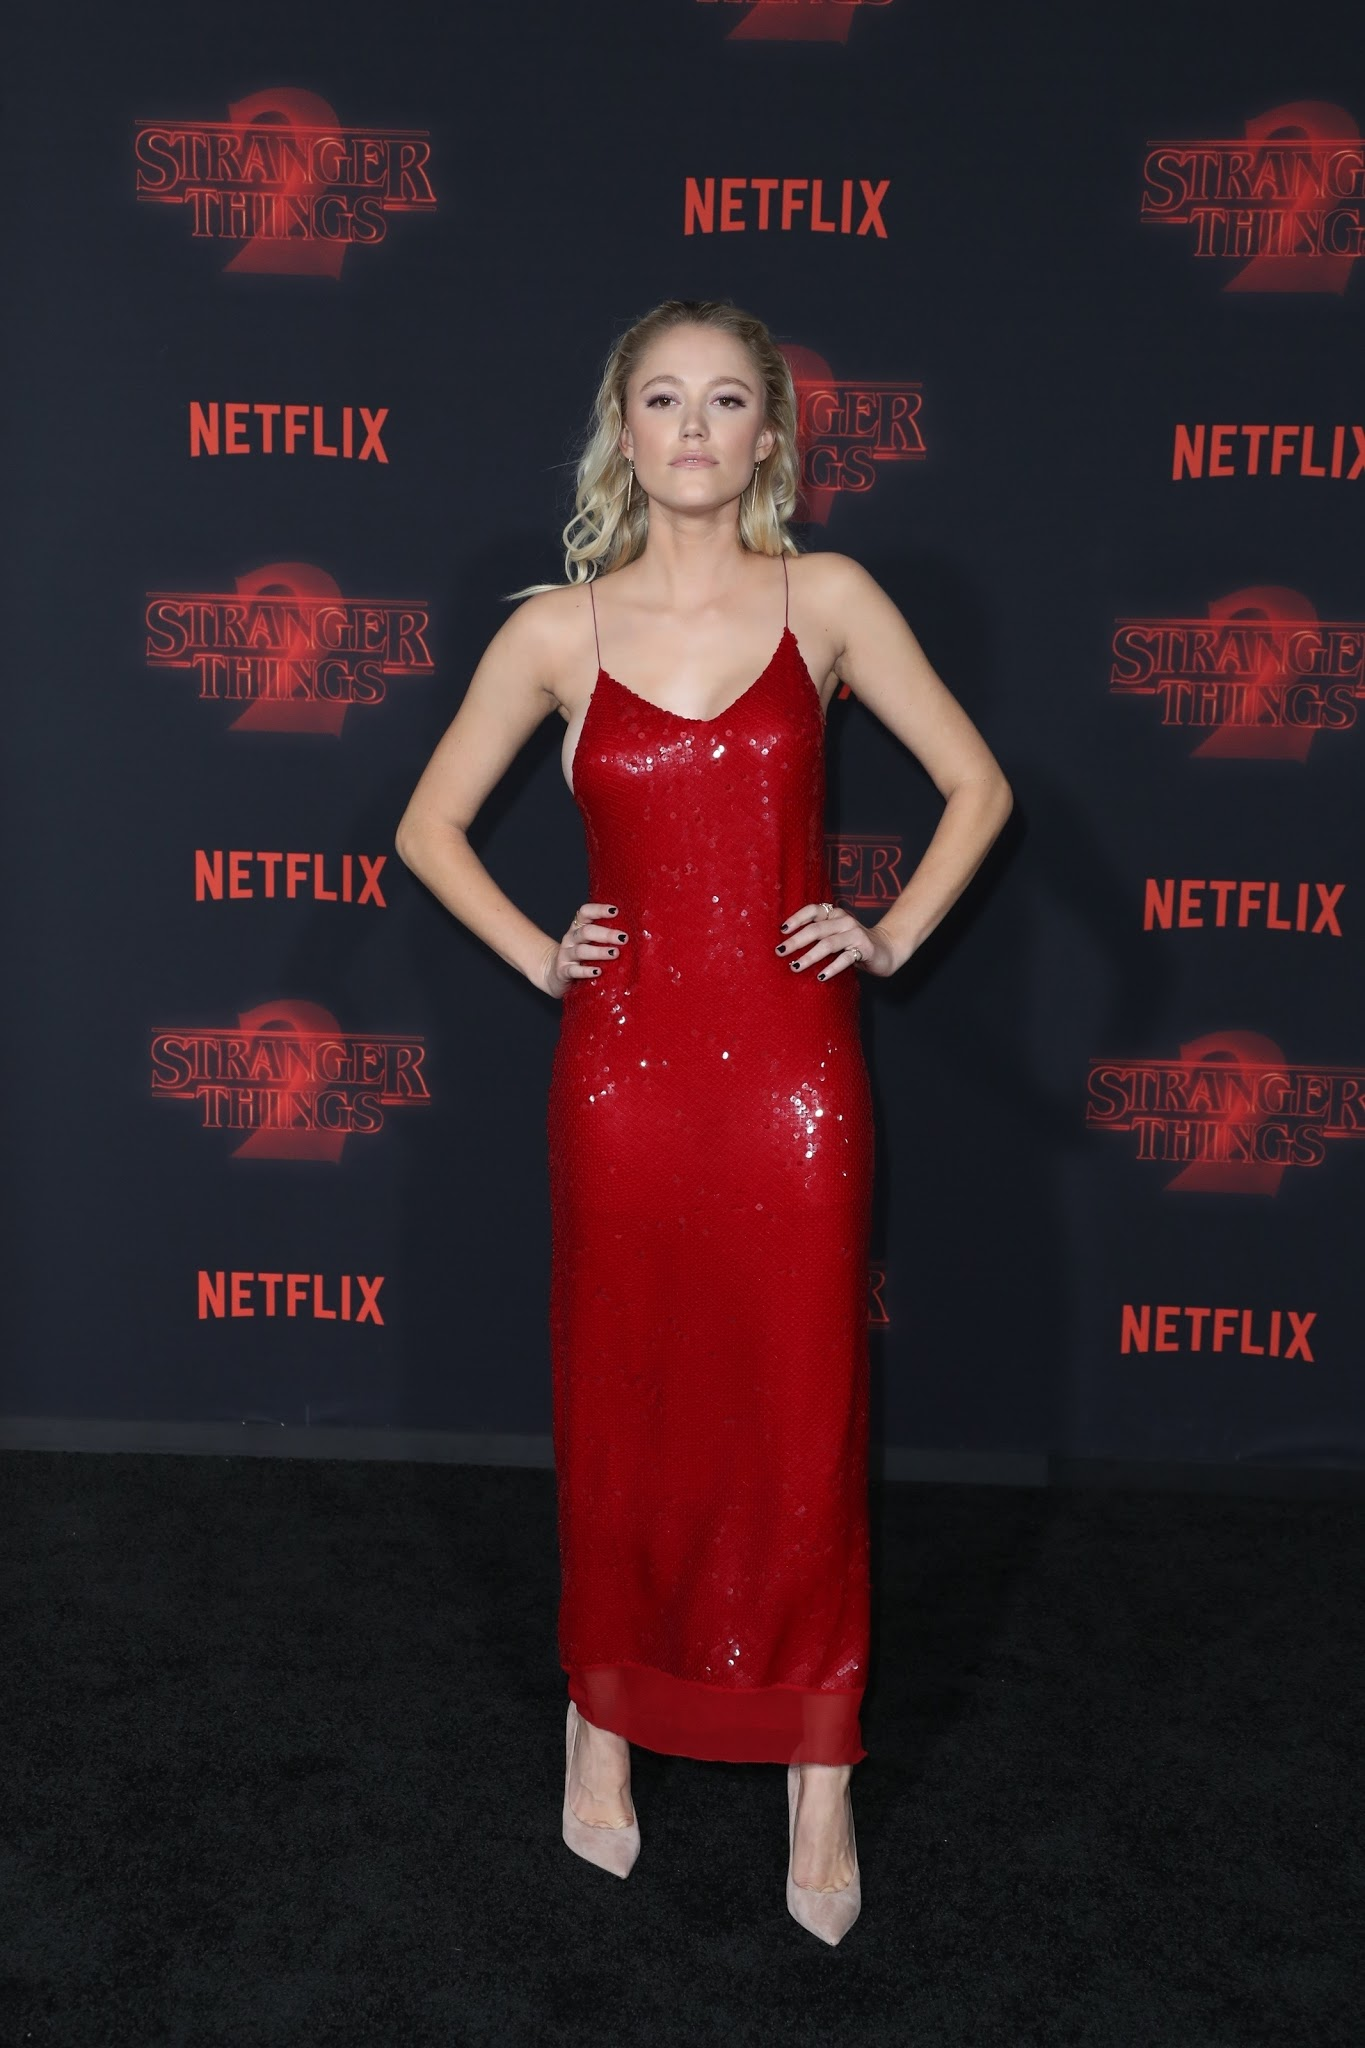 Cleavage Maika Monroe nudes (55 photos), Ass, Fappening, Feet, lingerie 2017